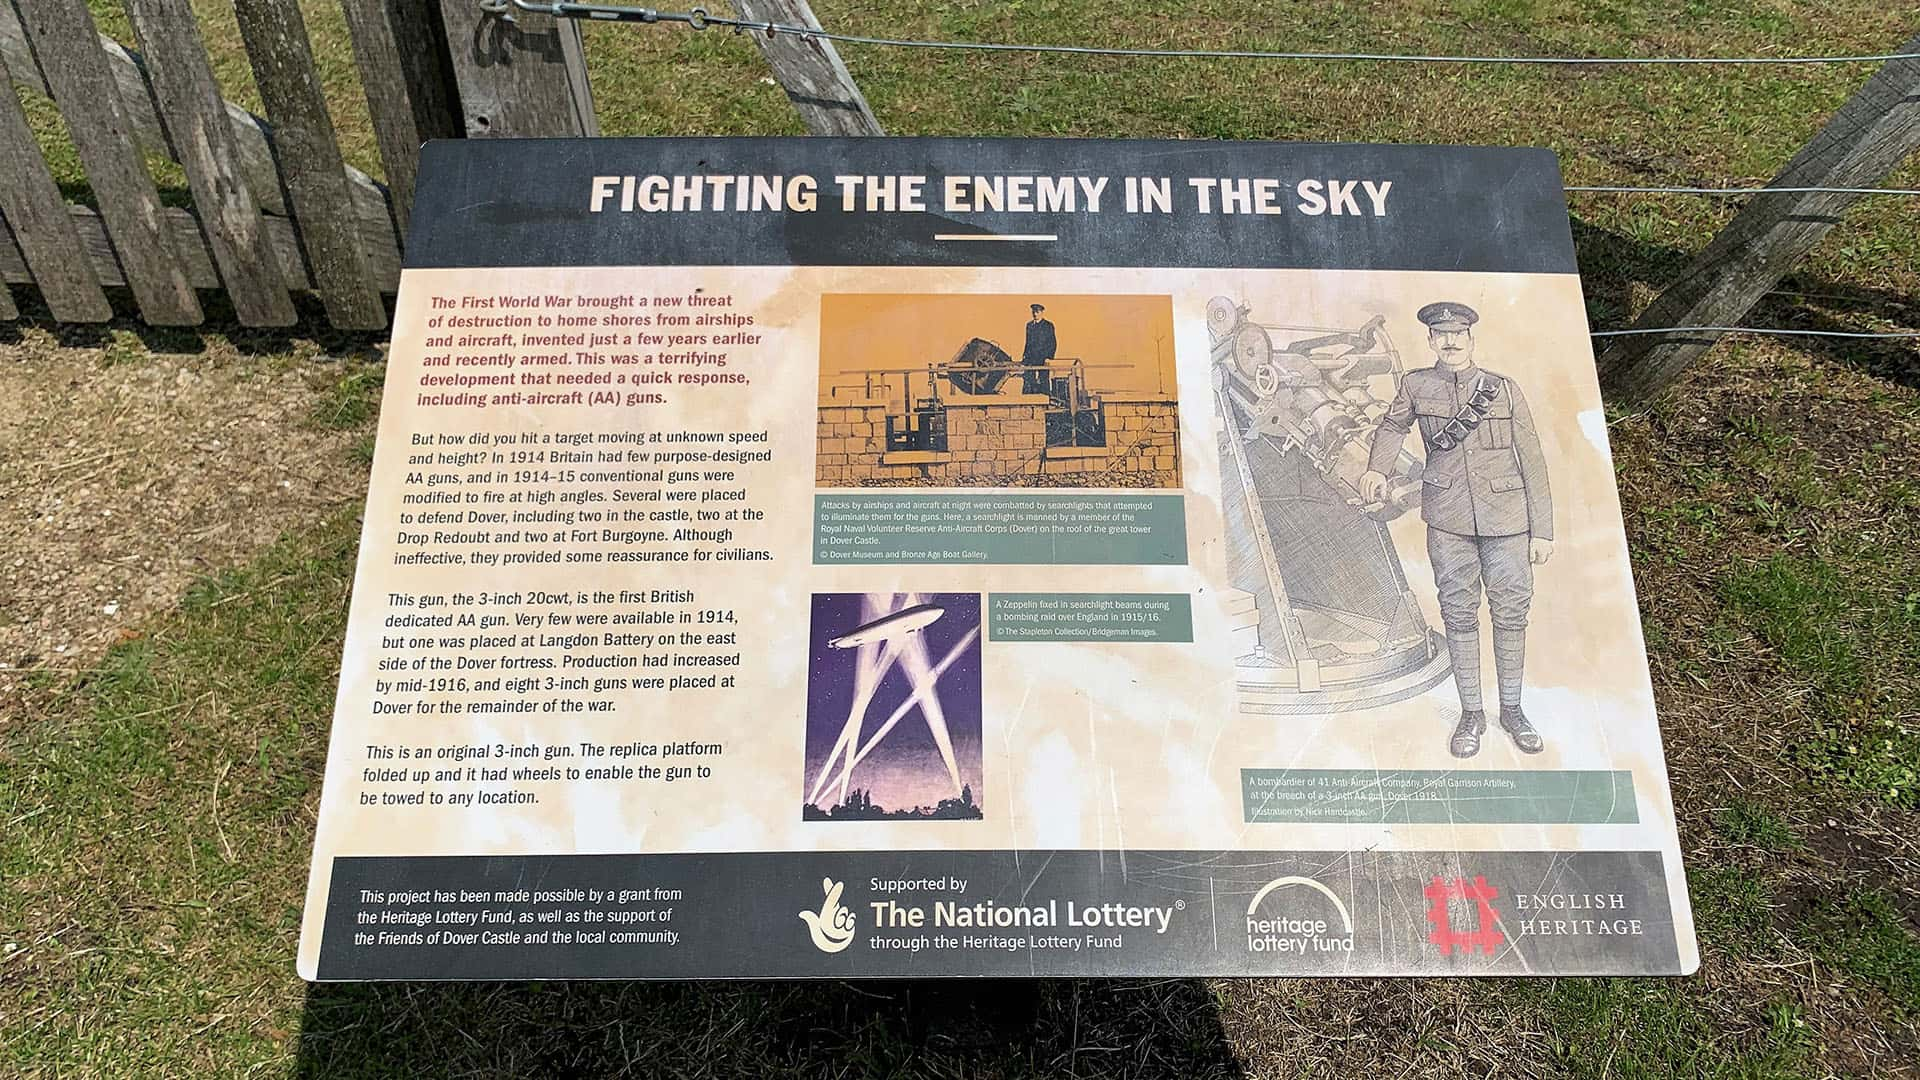 English Heritage – WWII information point